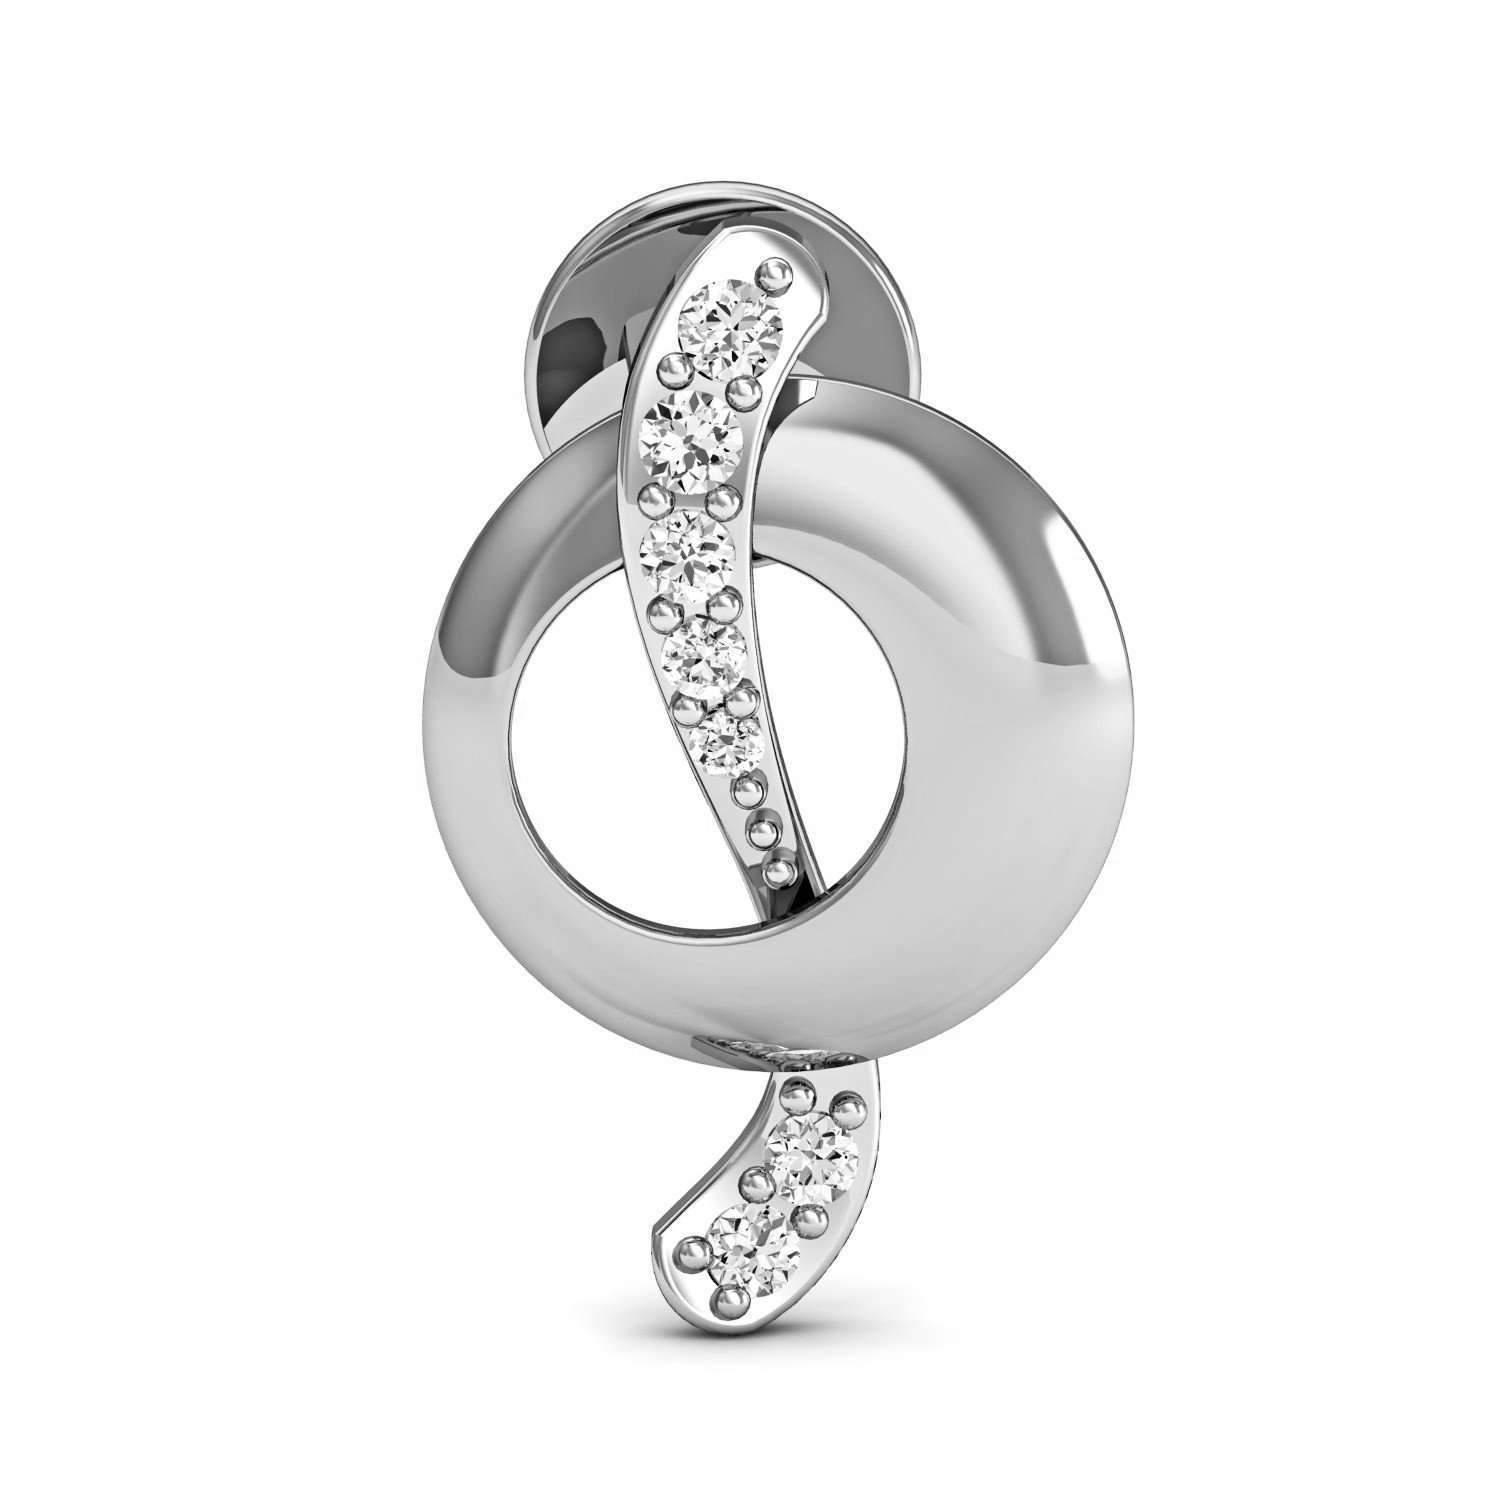 Diamoire Jewels Pave-Prong Diamond and 10kt White Gold Earrings Inspired by Nature ezoTIrBOK